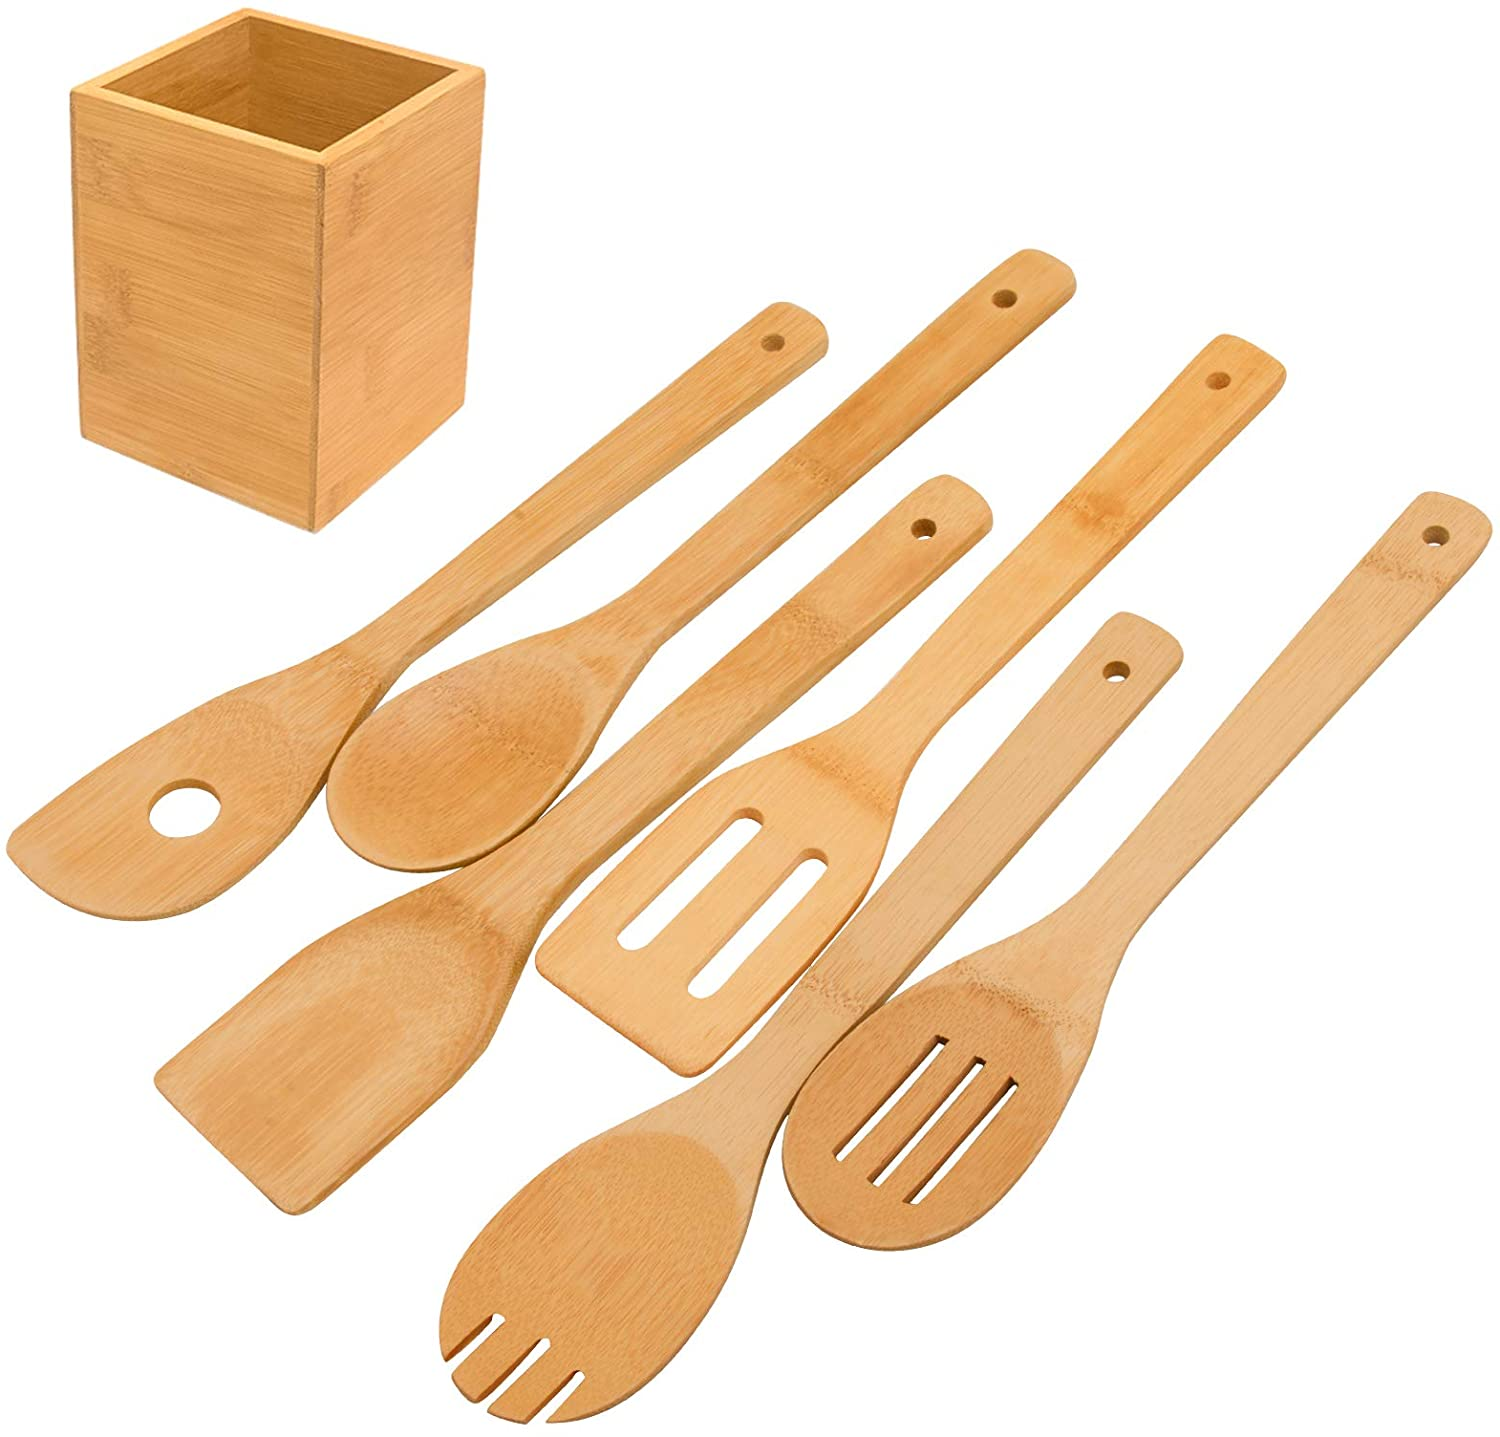 WOODEN SPATULA SPOON BAMBOO UTENSIL KITCHEN COOKING TOOLS LONG HANDLE MIX TOOL